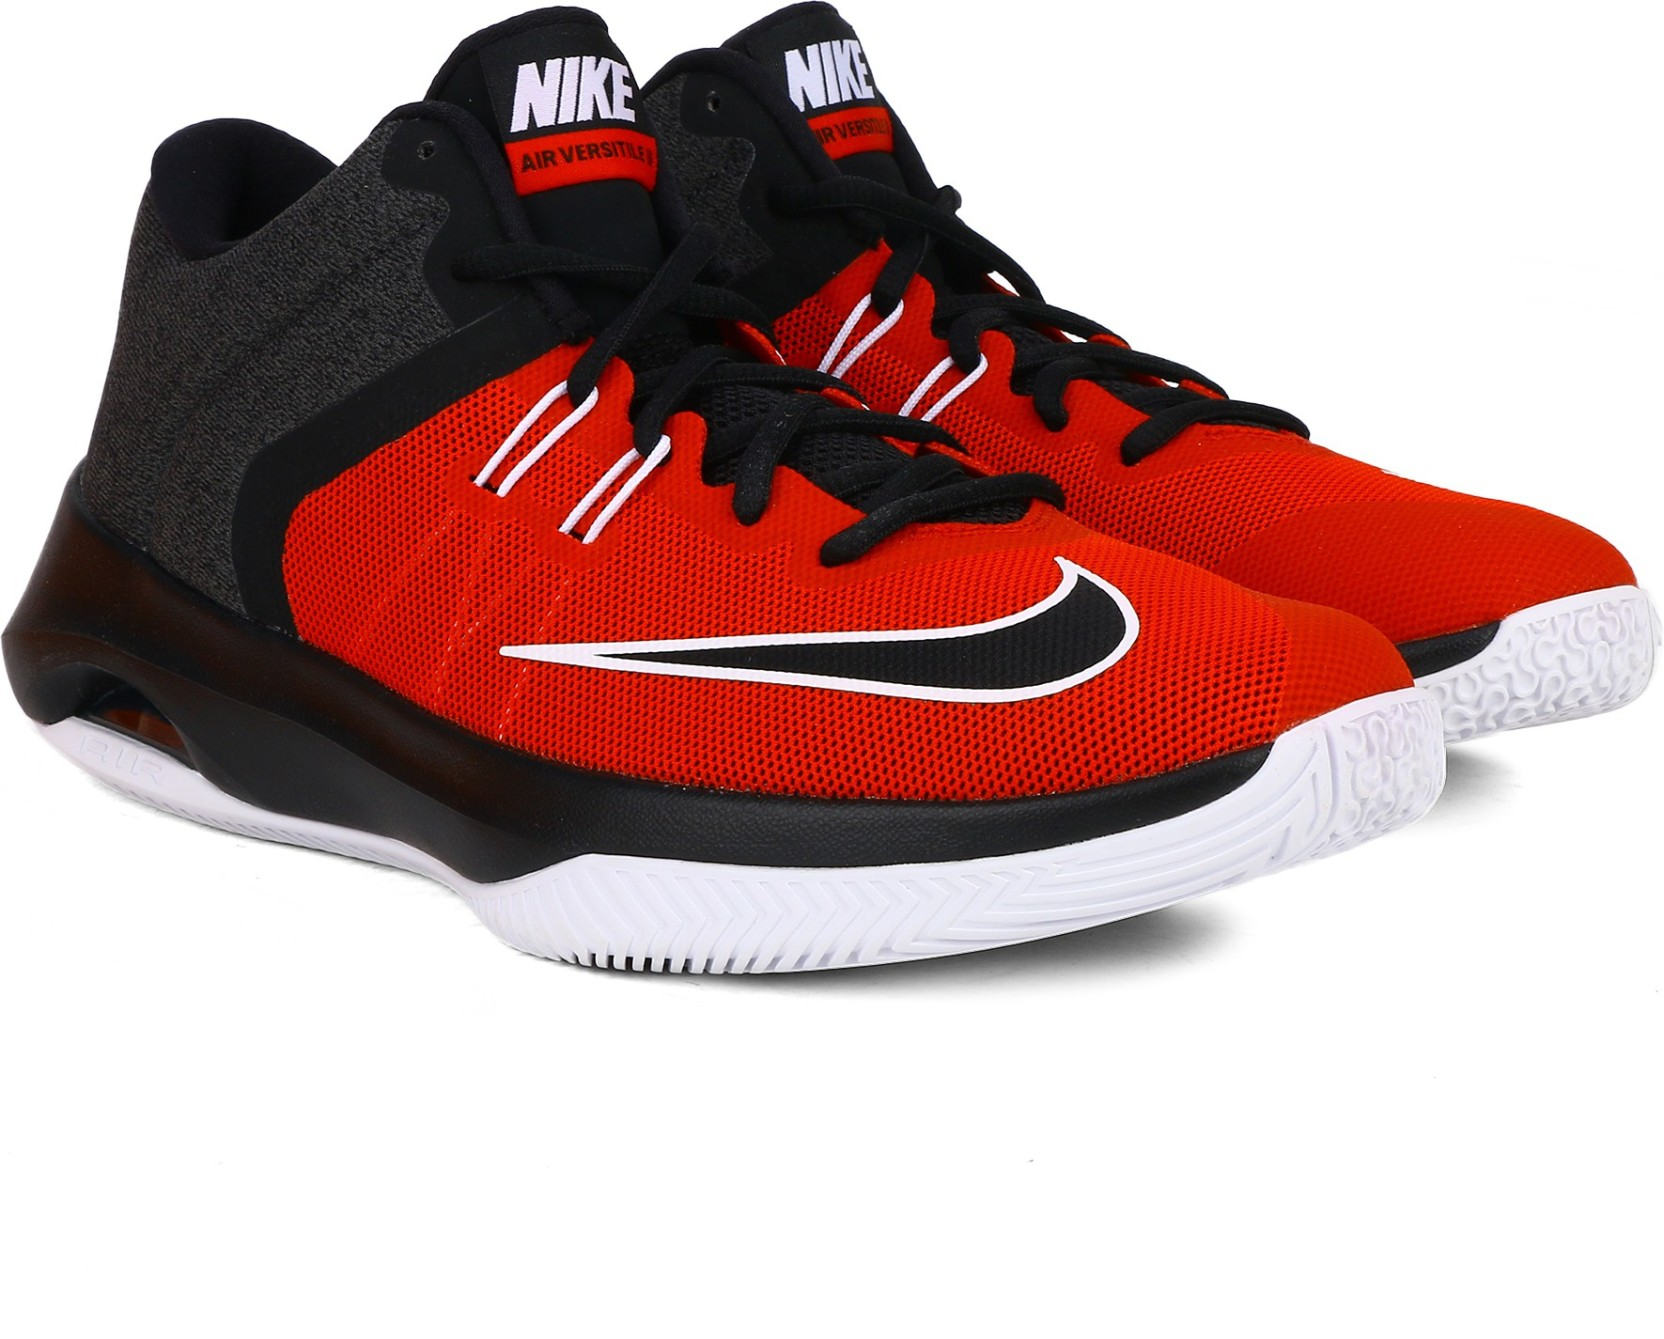 c080f7465a63 Nike AIR VERSITILE II Basketball Shoes For Men - Buy UNIVERSITY RED ...